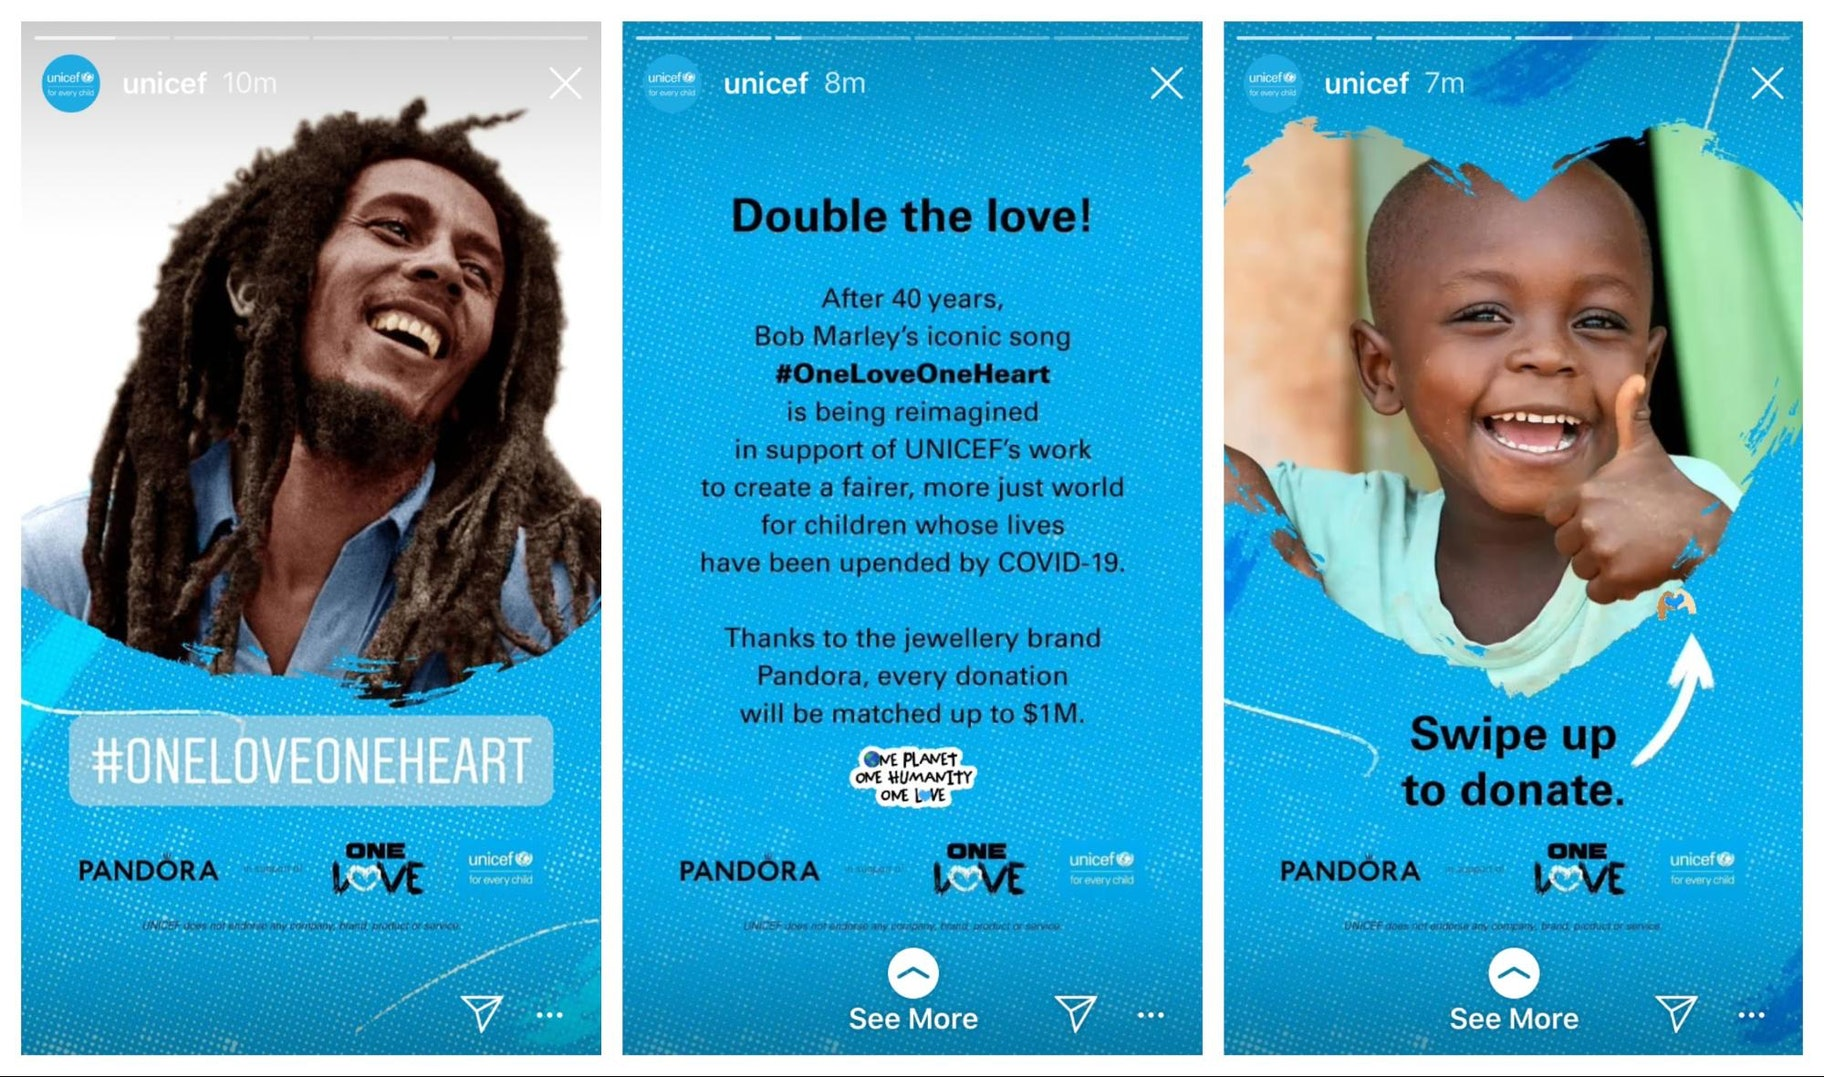 Unicef Instagram Story Design Example